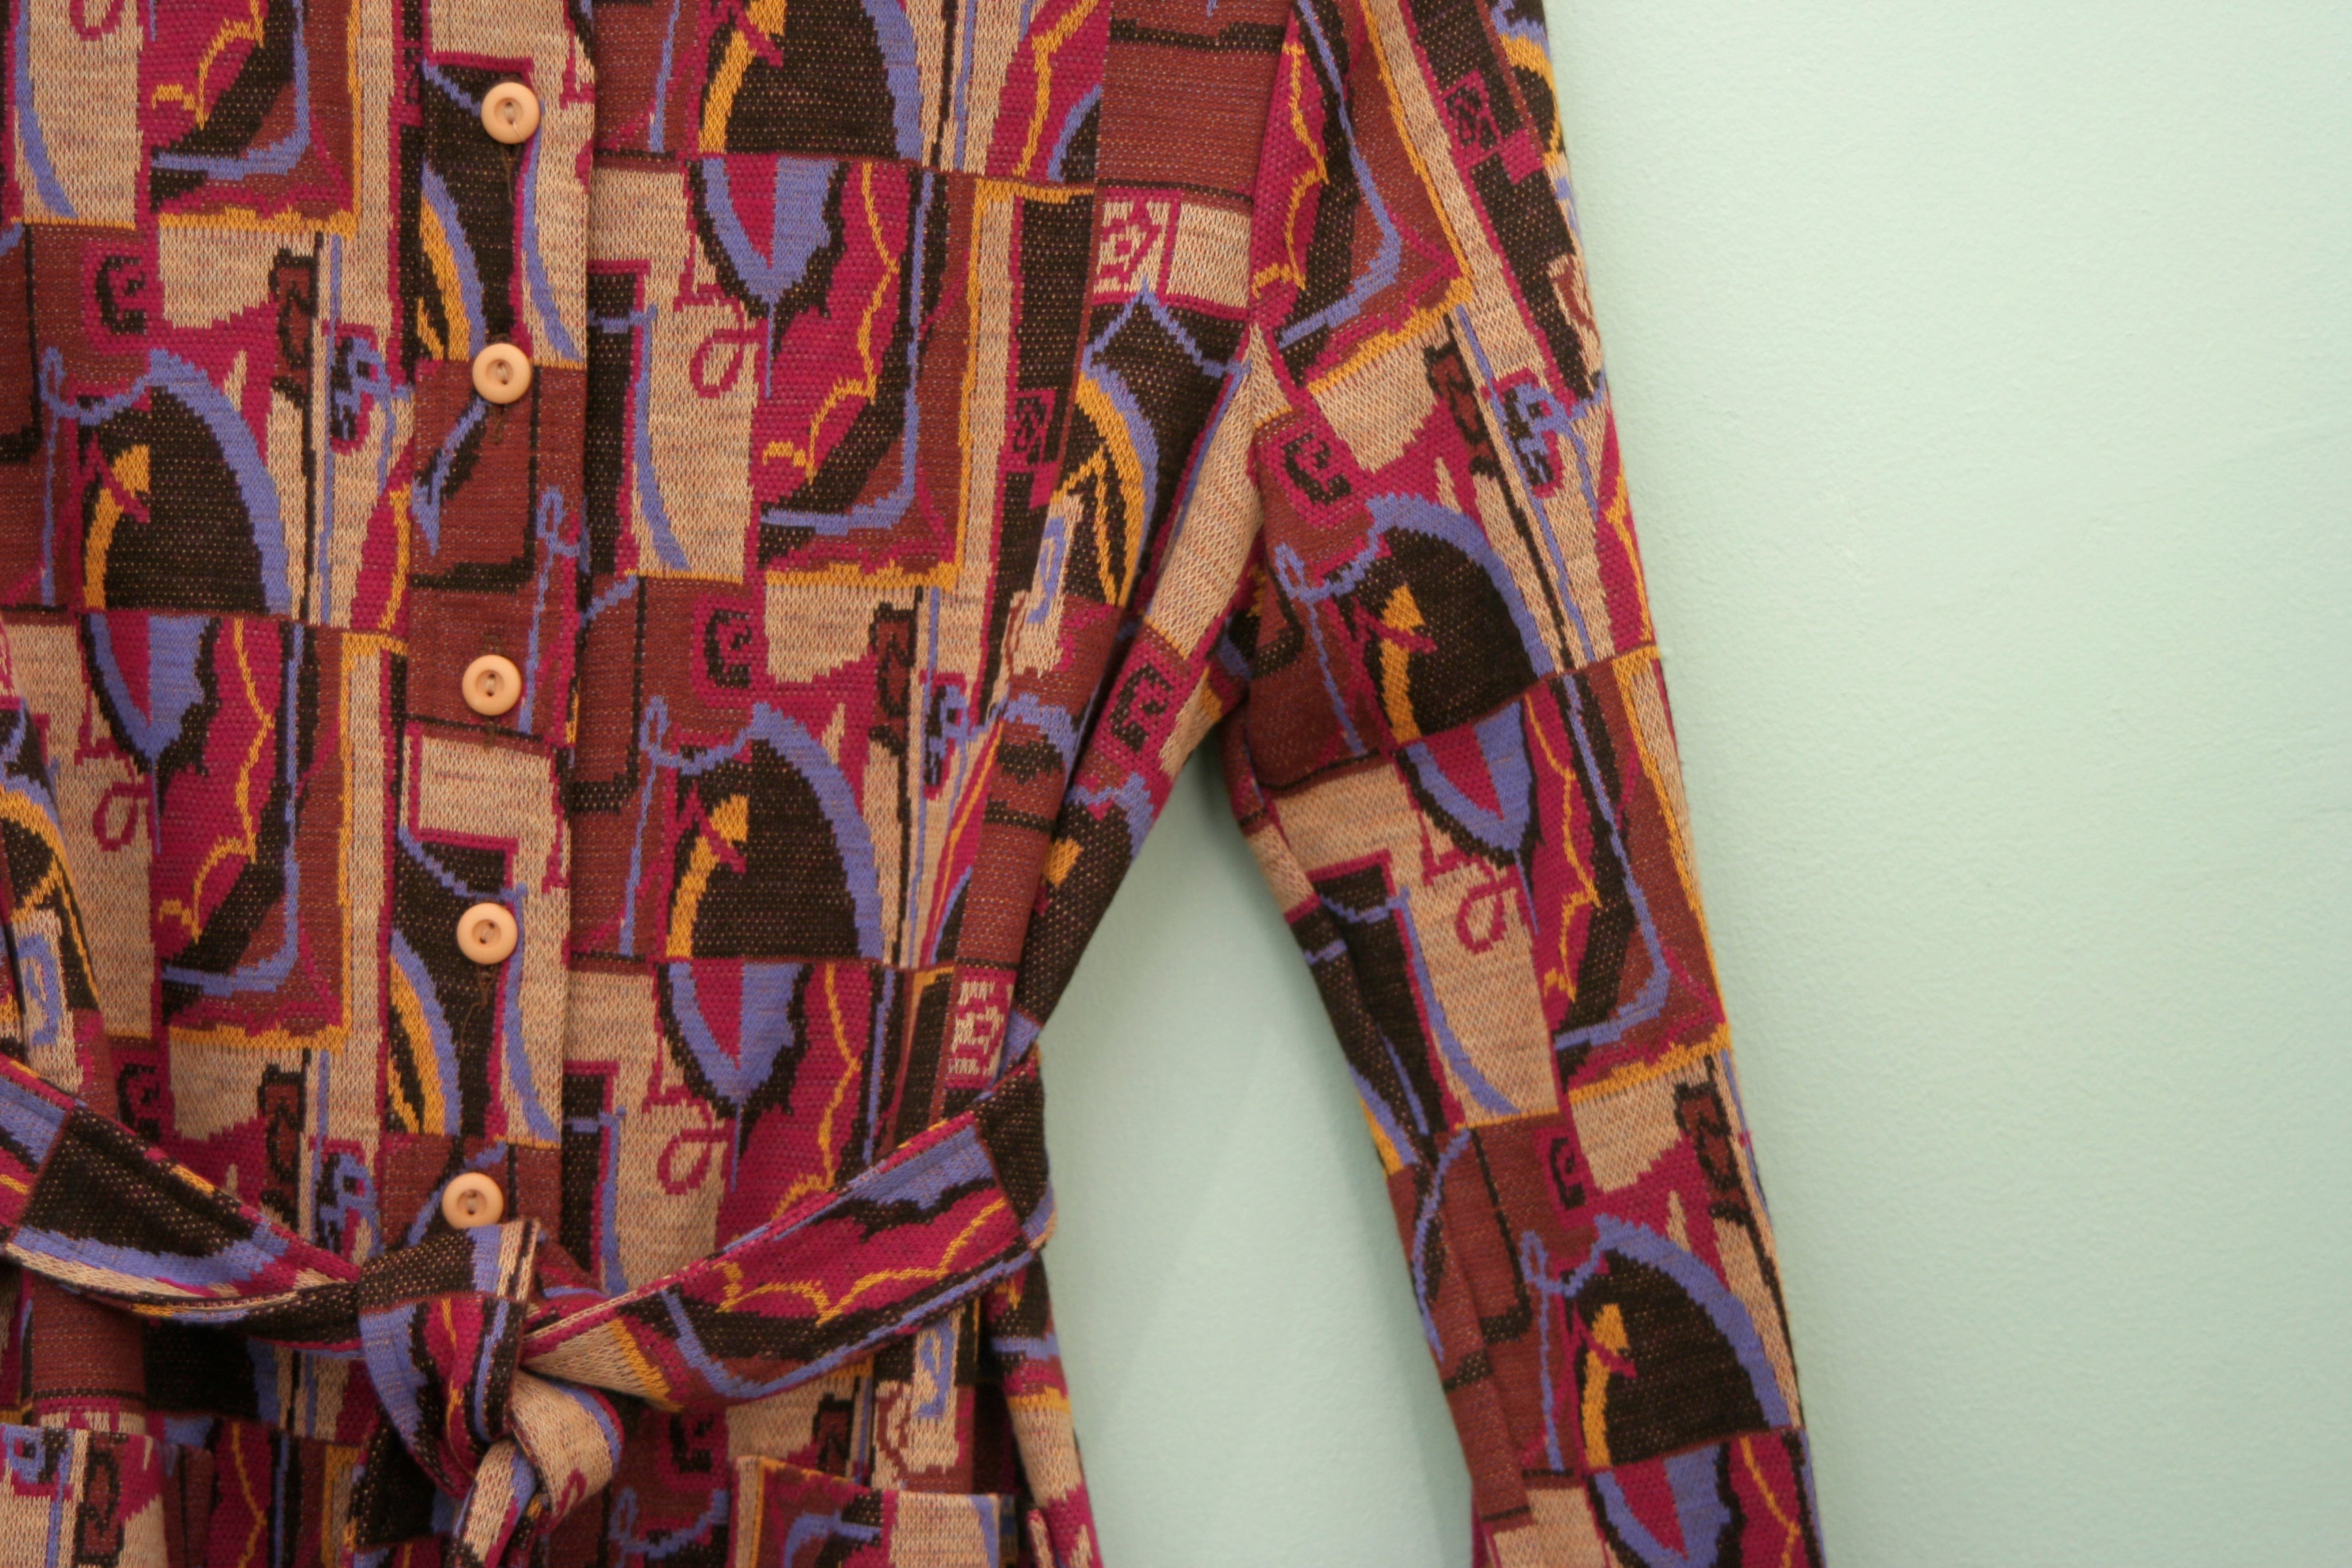 Vintage technicolour delta jacket with matching tie